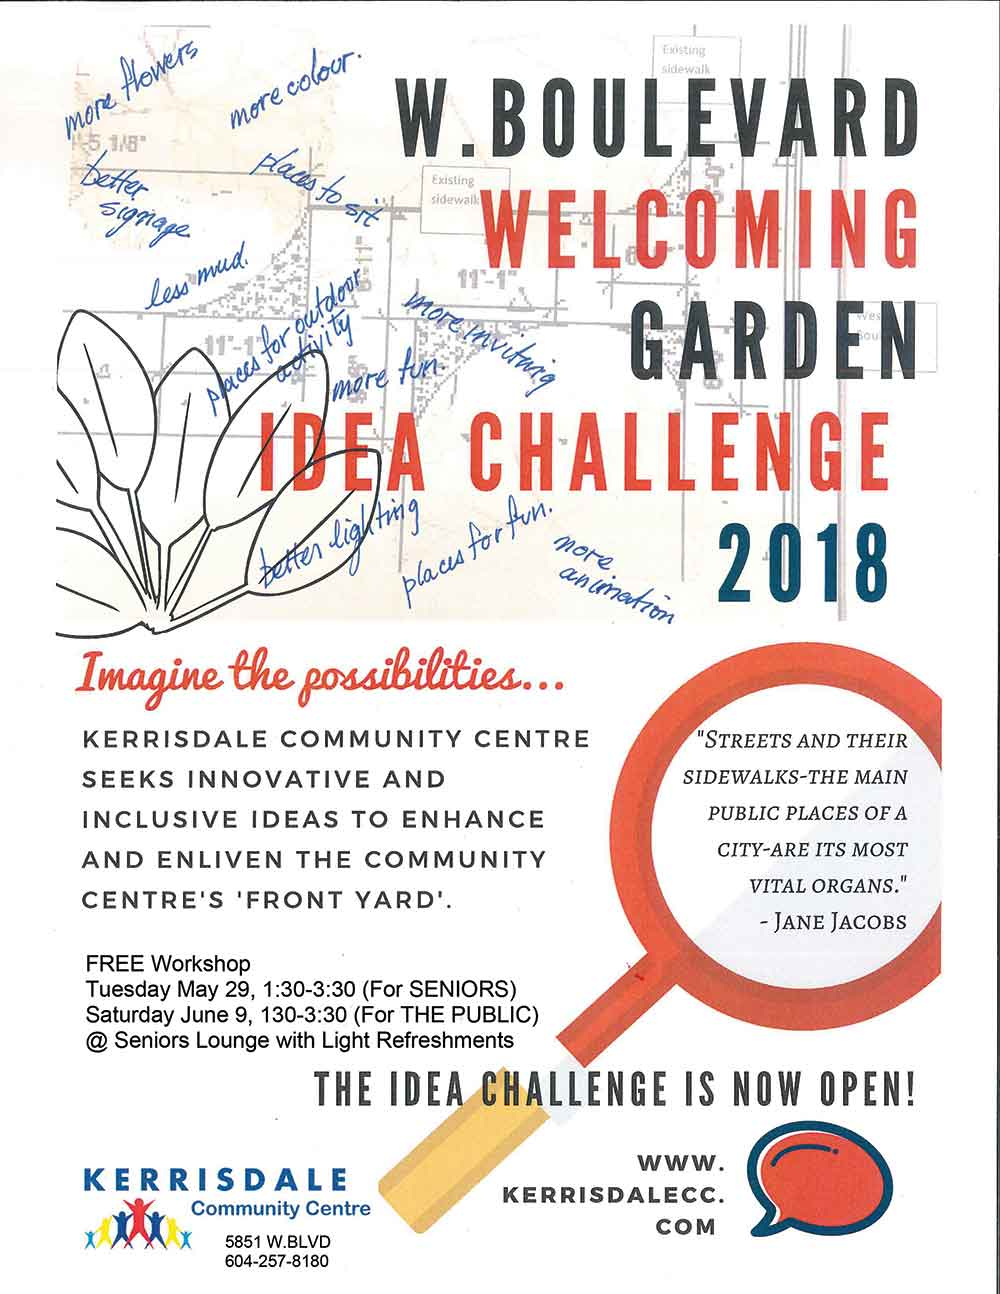 W. Boulevard Welcome Garden Idea Challenge 2018 Imagine the possibilities… Kerrisdale Community Centre seeks innovative and inclusive ideas to enhance and enliven the community centre's 'front yard'. FREE workshop Tuesday May 29, 1:30-3:30pm (for SENIORS) Saturday June 9, 1:30-3:30pm (For the PUBLIC) @ Seniors Lounge with Light Refreshments The idea challenge is now open